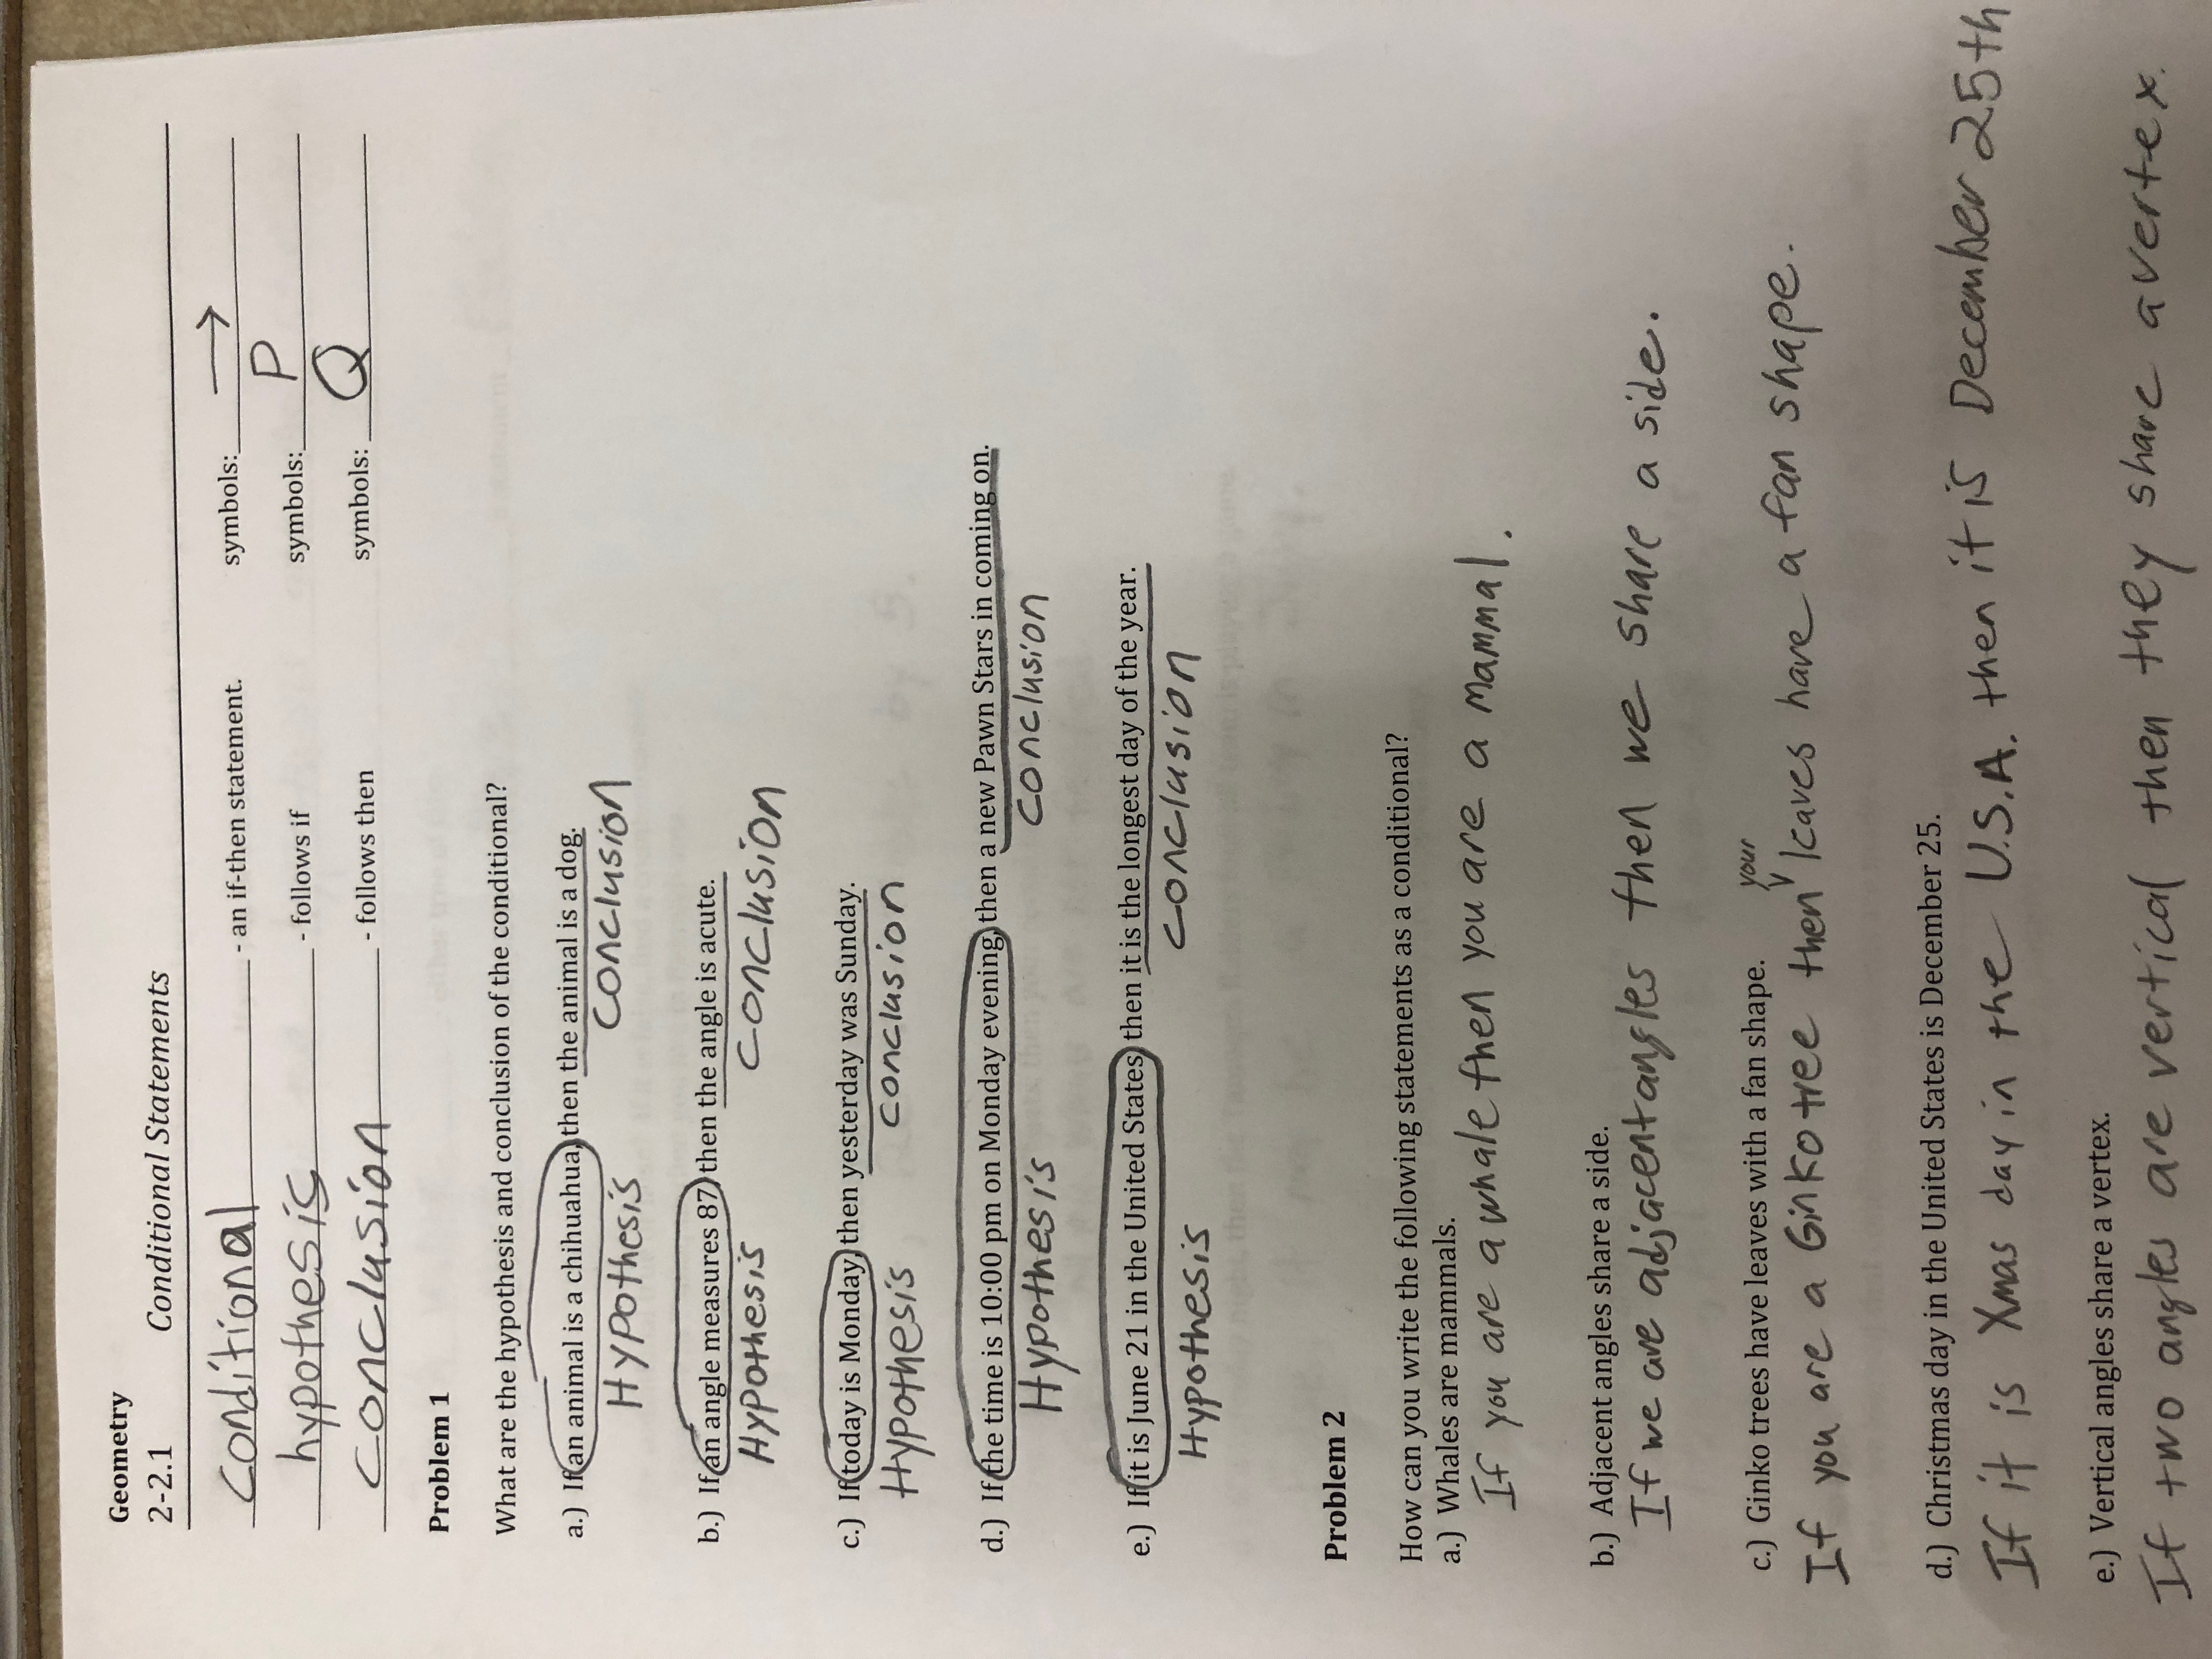 Spanish 2 Chapter 6 Workbook Answers